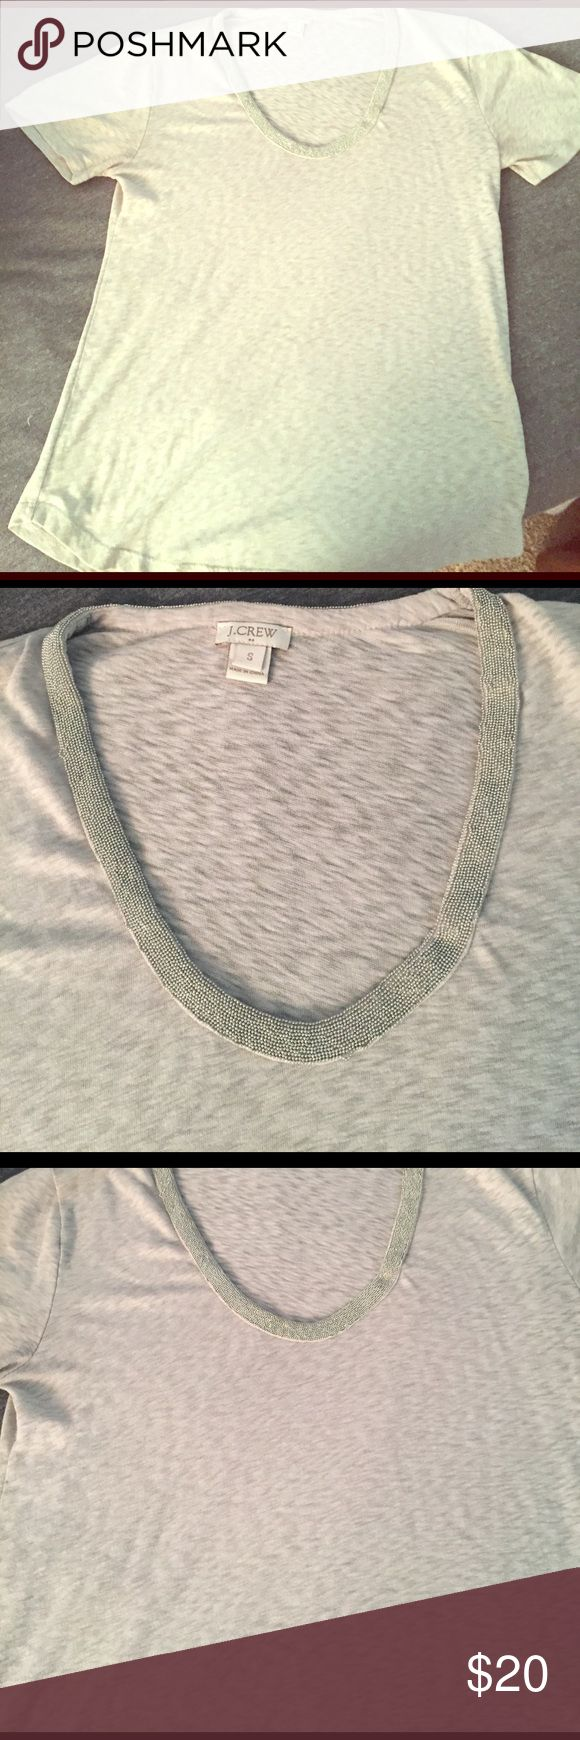 J. Crew Women's Small Embellished Tee Short sleeve tee from J. Cole. Worn only once! Silver metallic beading around the neckline. J. Crew Tops Tees - Short Sleeve